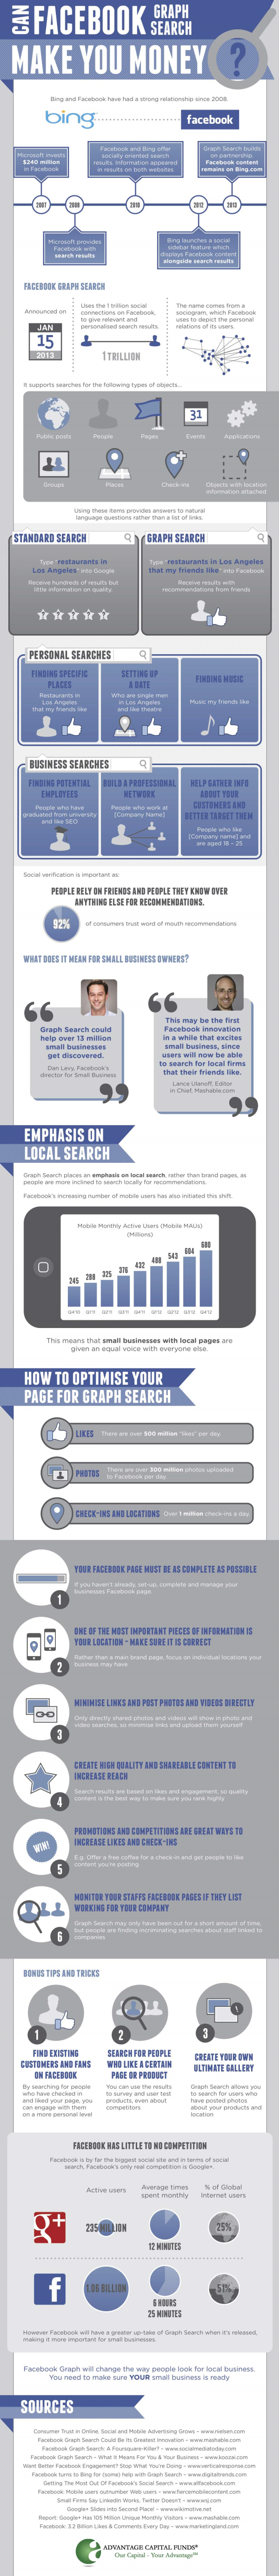 can-facebook-graph-search-make-you-money121-resized-600